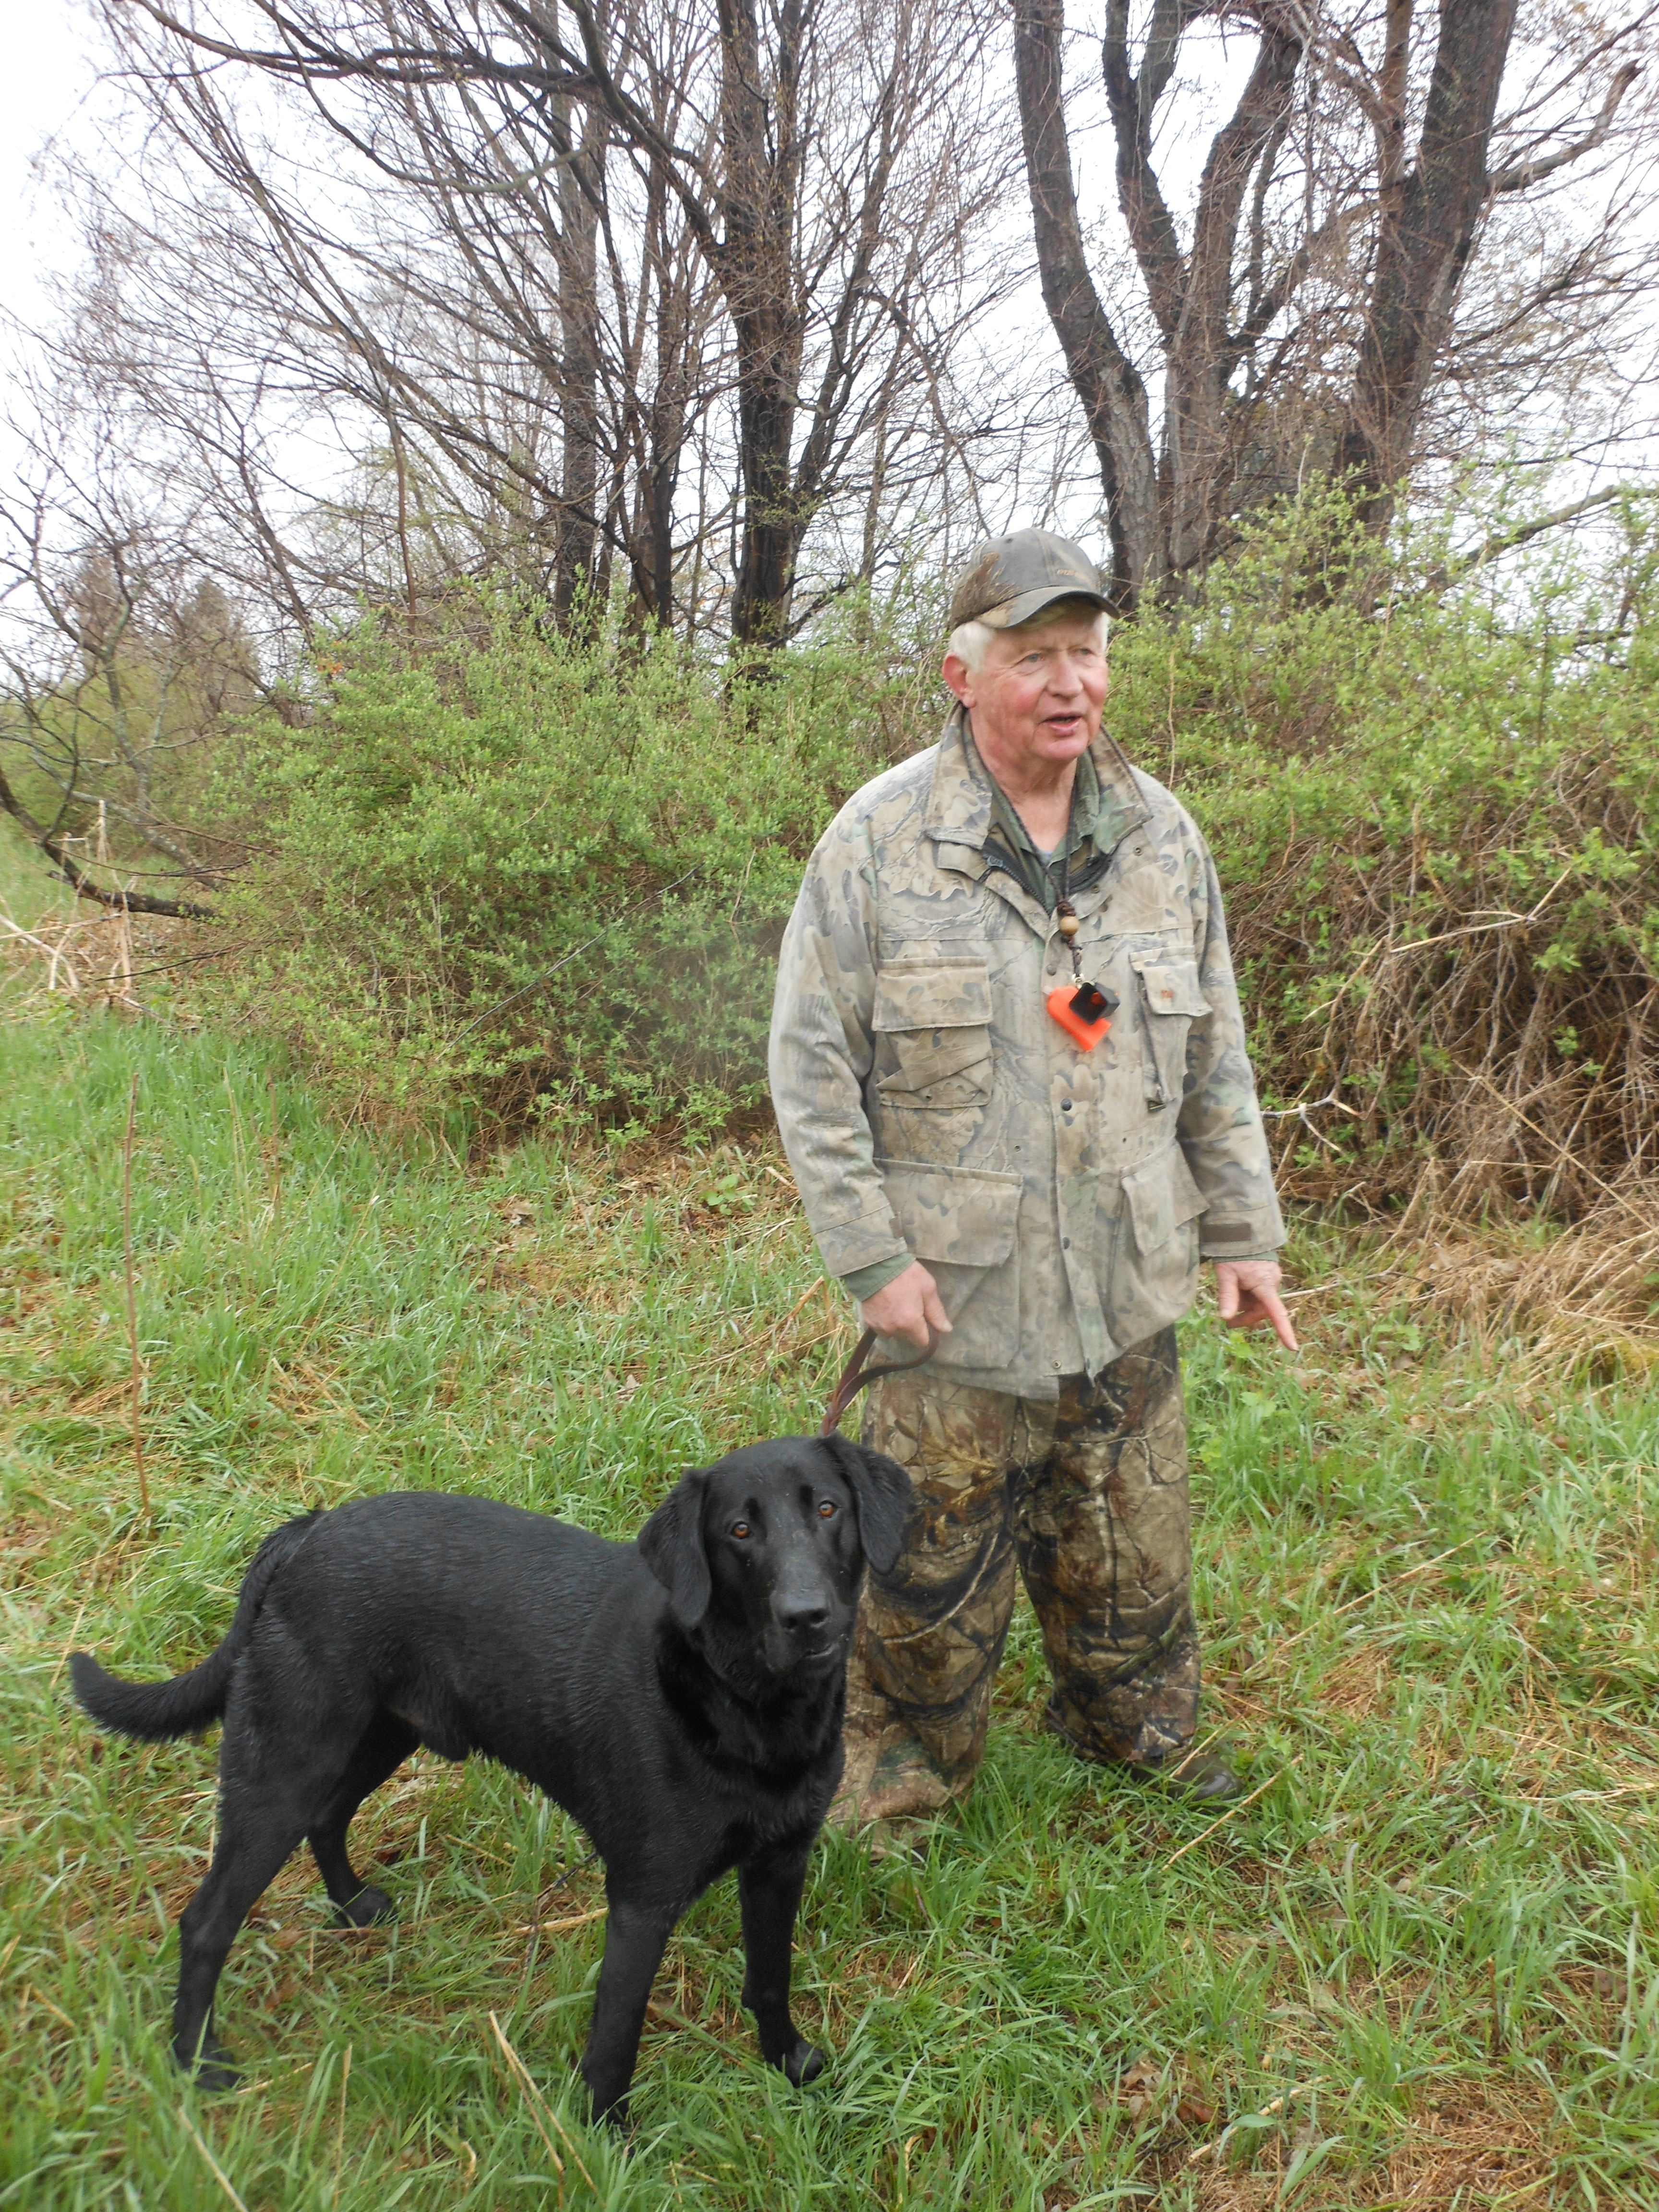 Jim Karr, Empire Retriever Club event coordinator, and 2-year-old Harley get ready for hunt-like field and water trials at the Tonawanda Wildlife Management area in Wolcottsville.